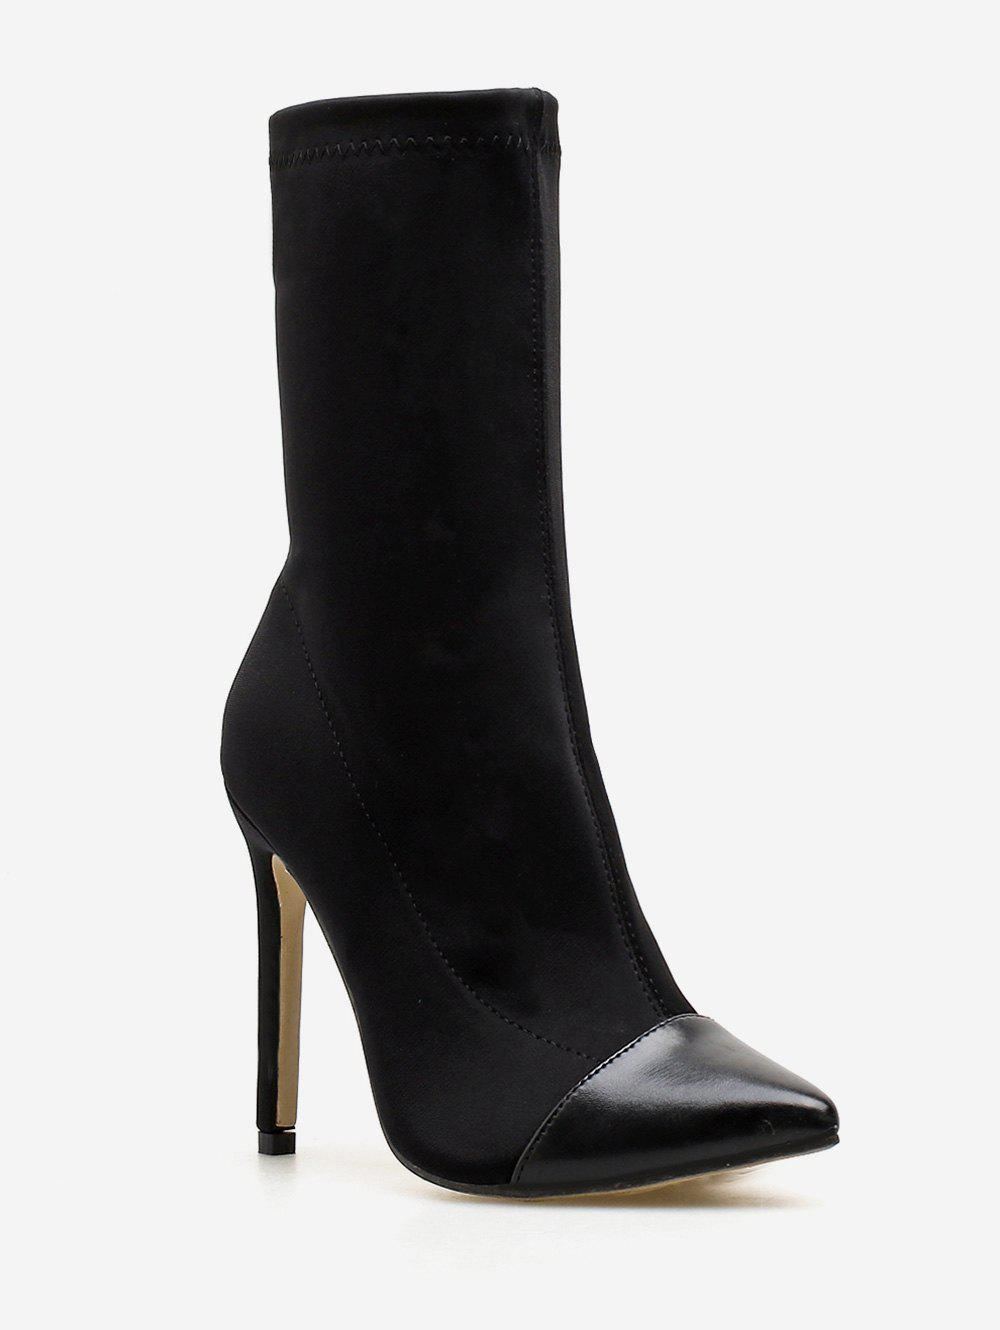 Store Pointed Toe High Heel Sock Boots